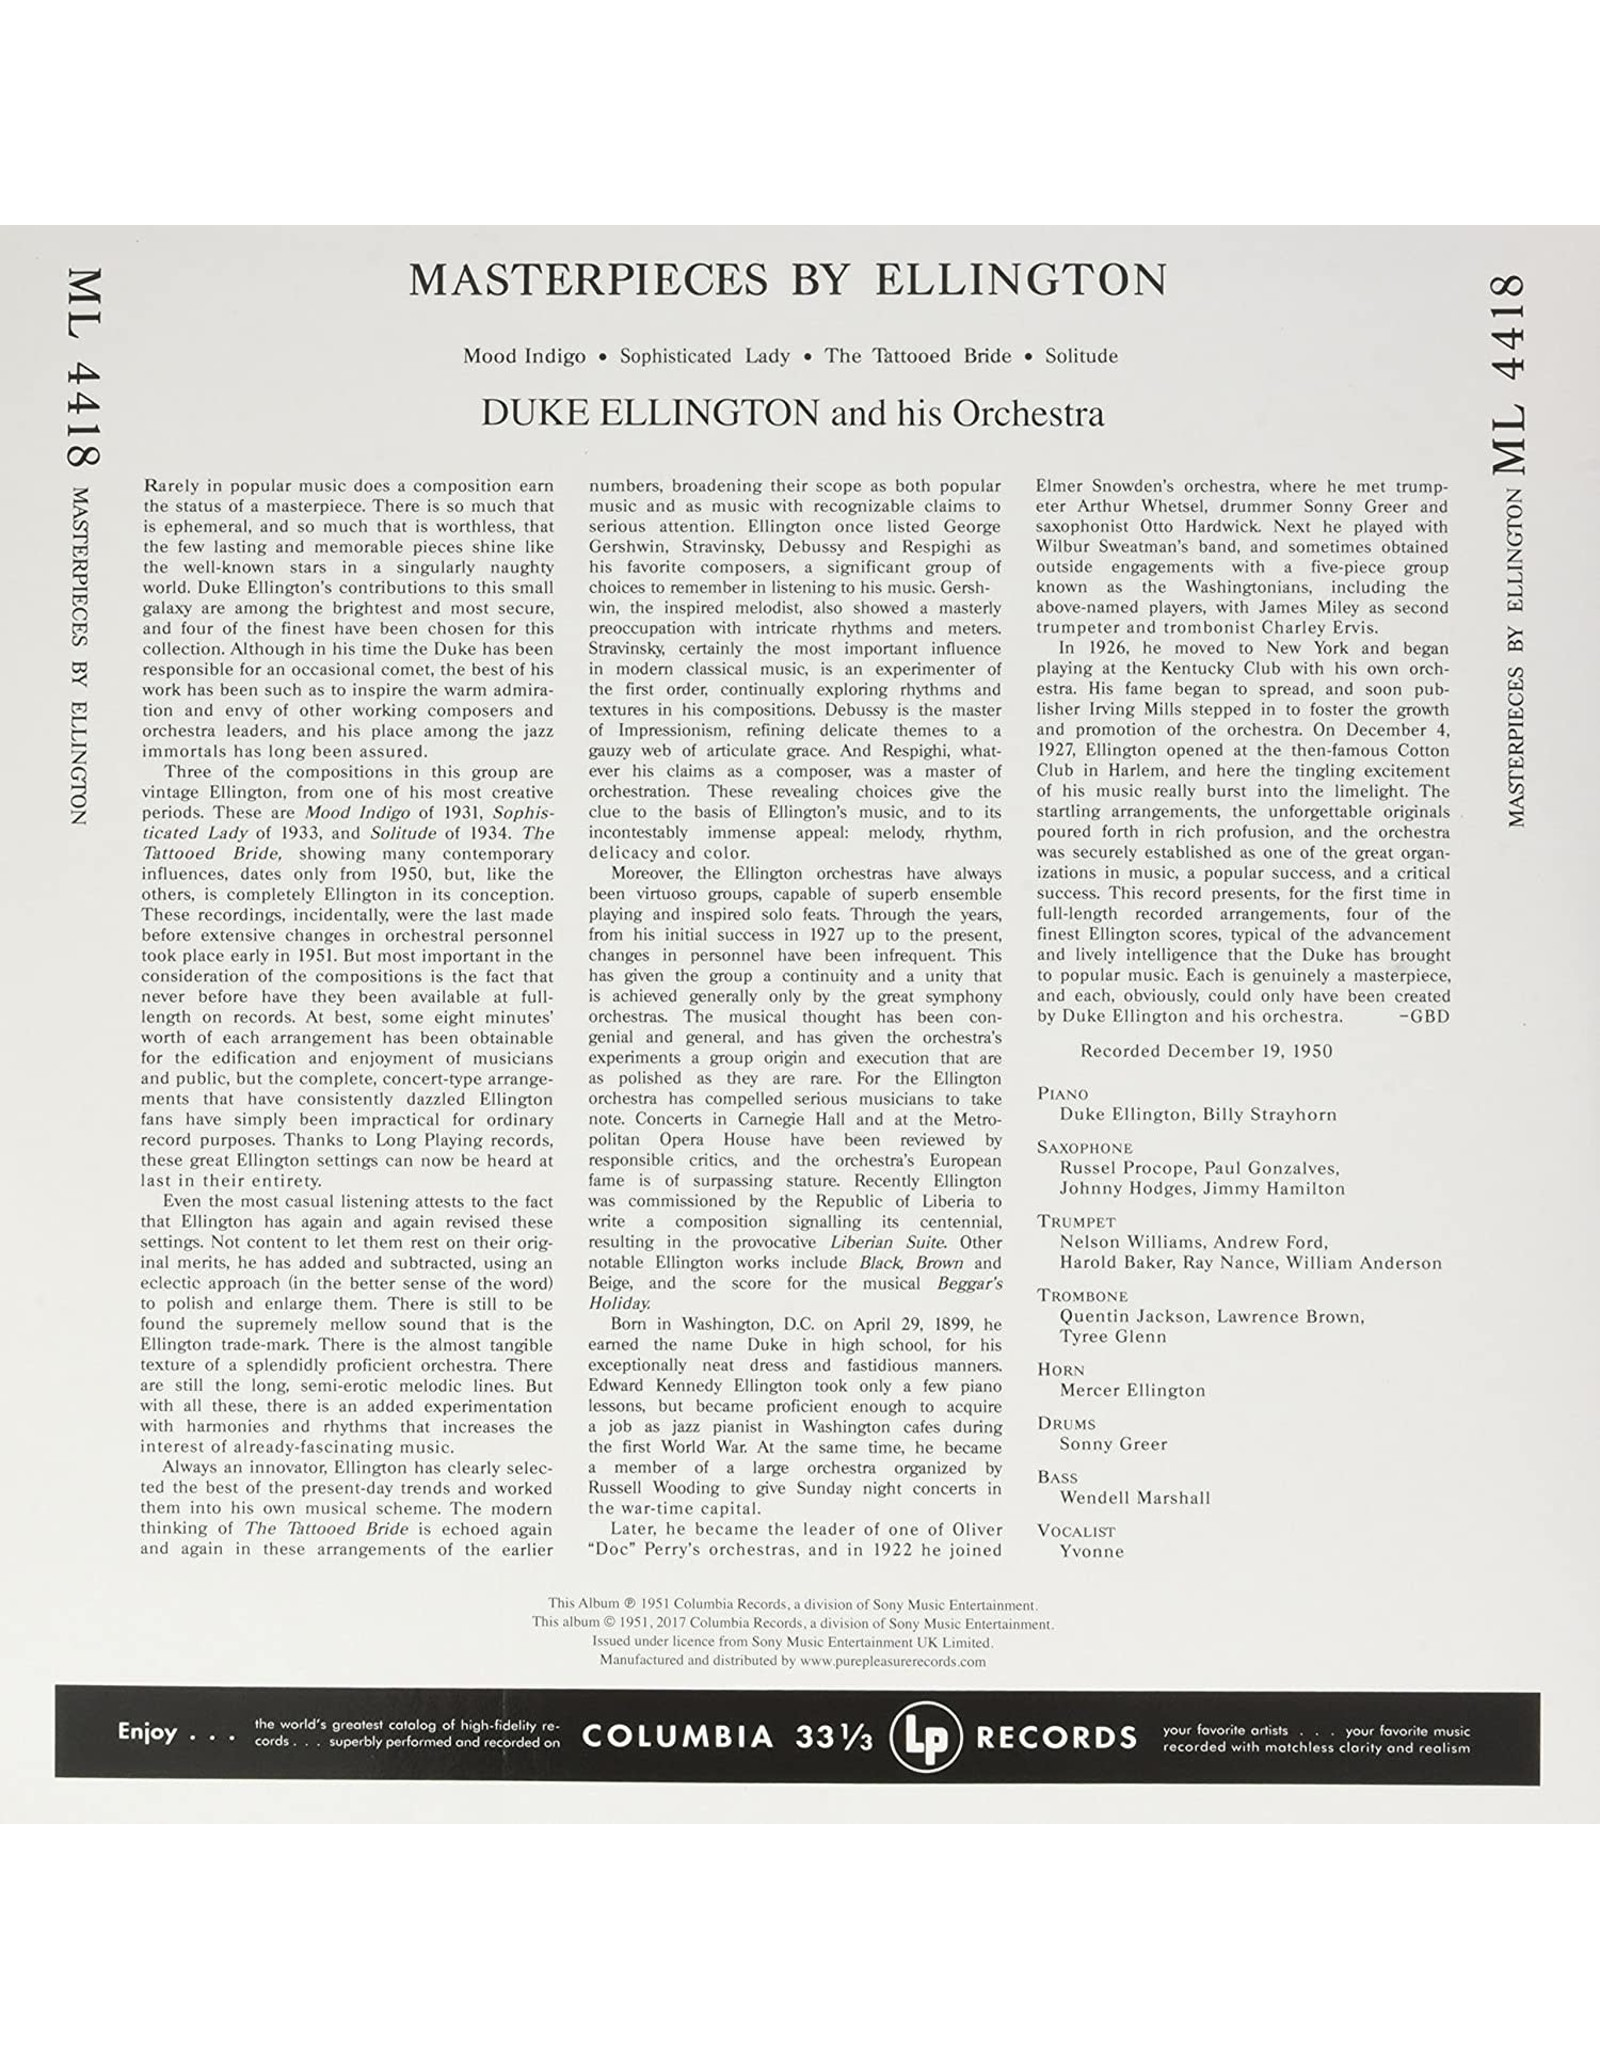 Duke Ellington - Masterpieces By Ellington (Mono)